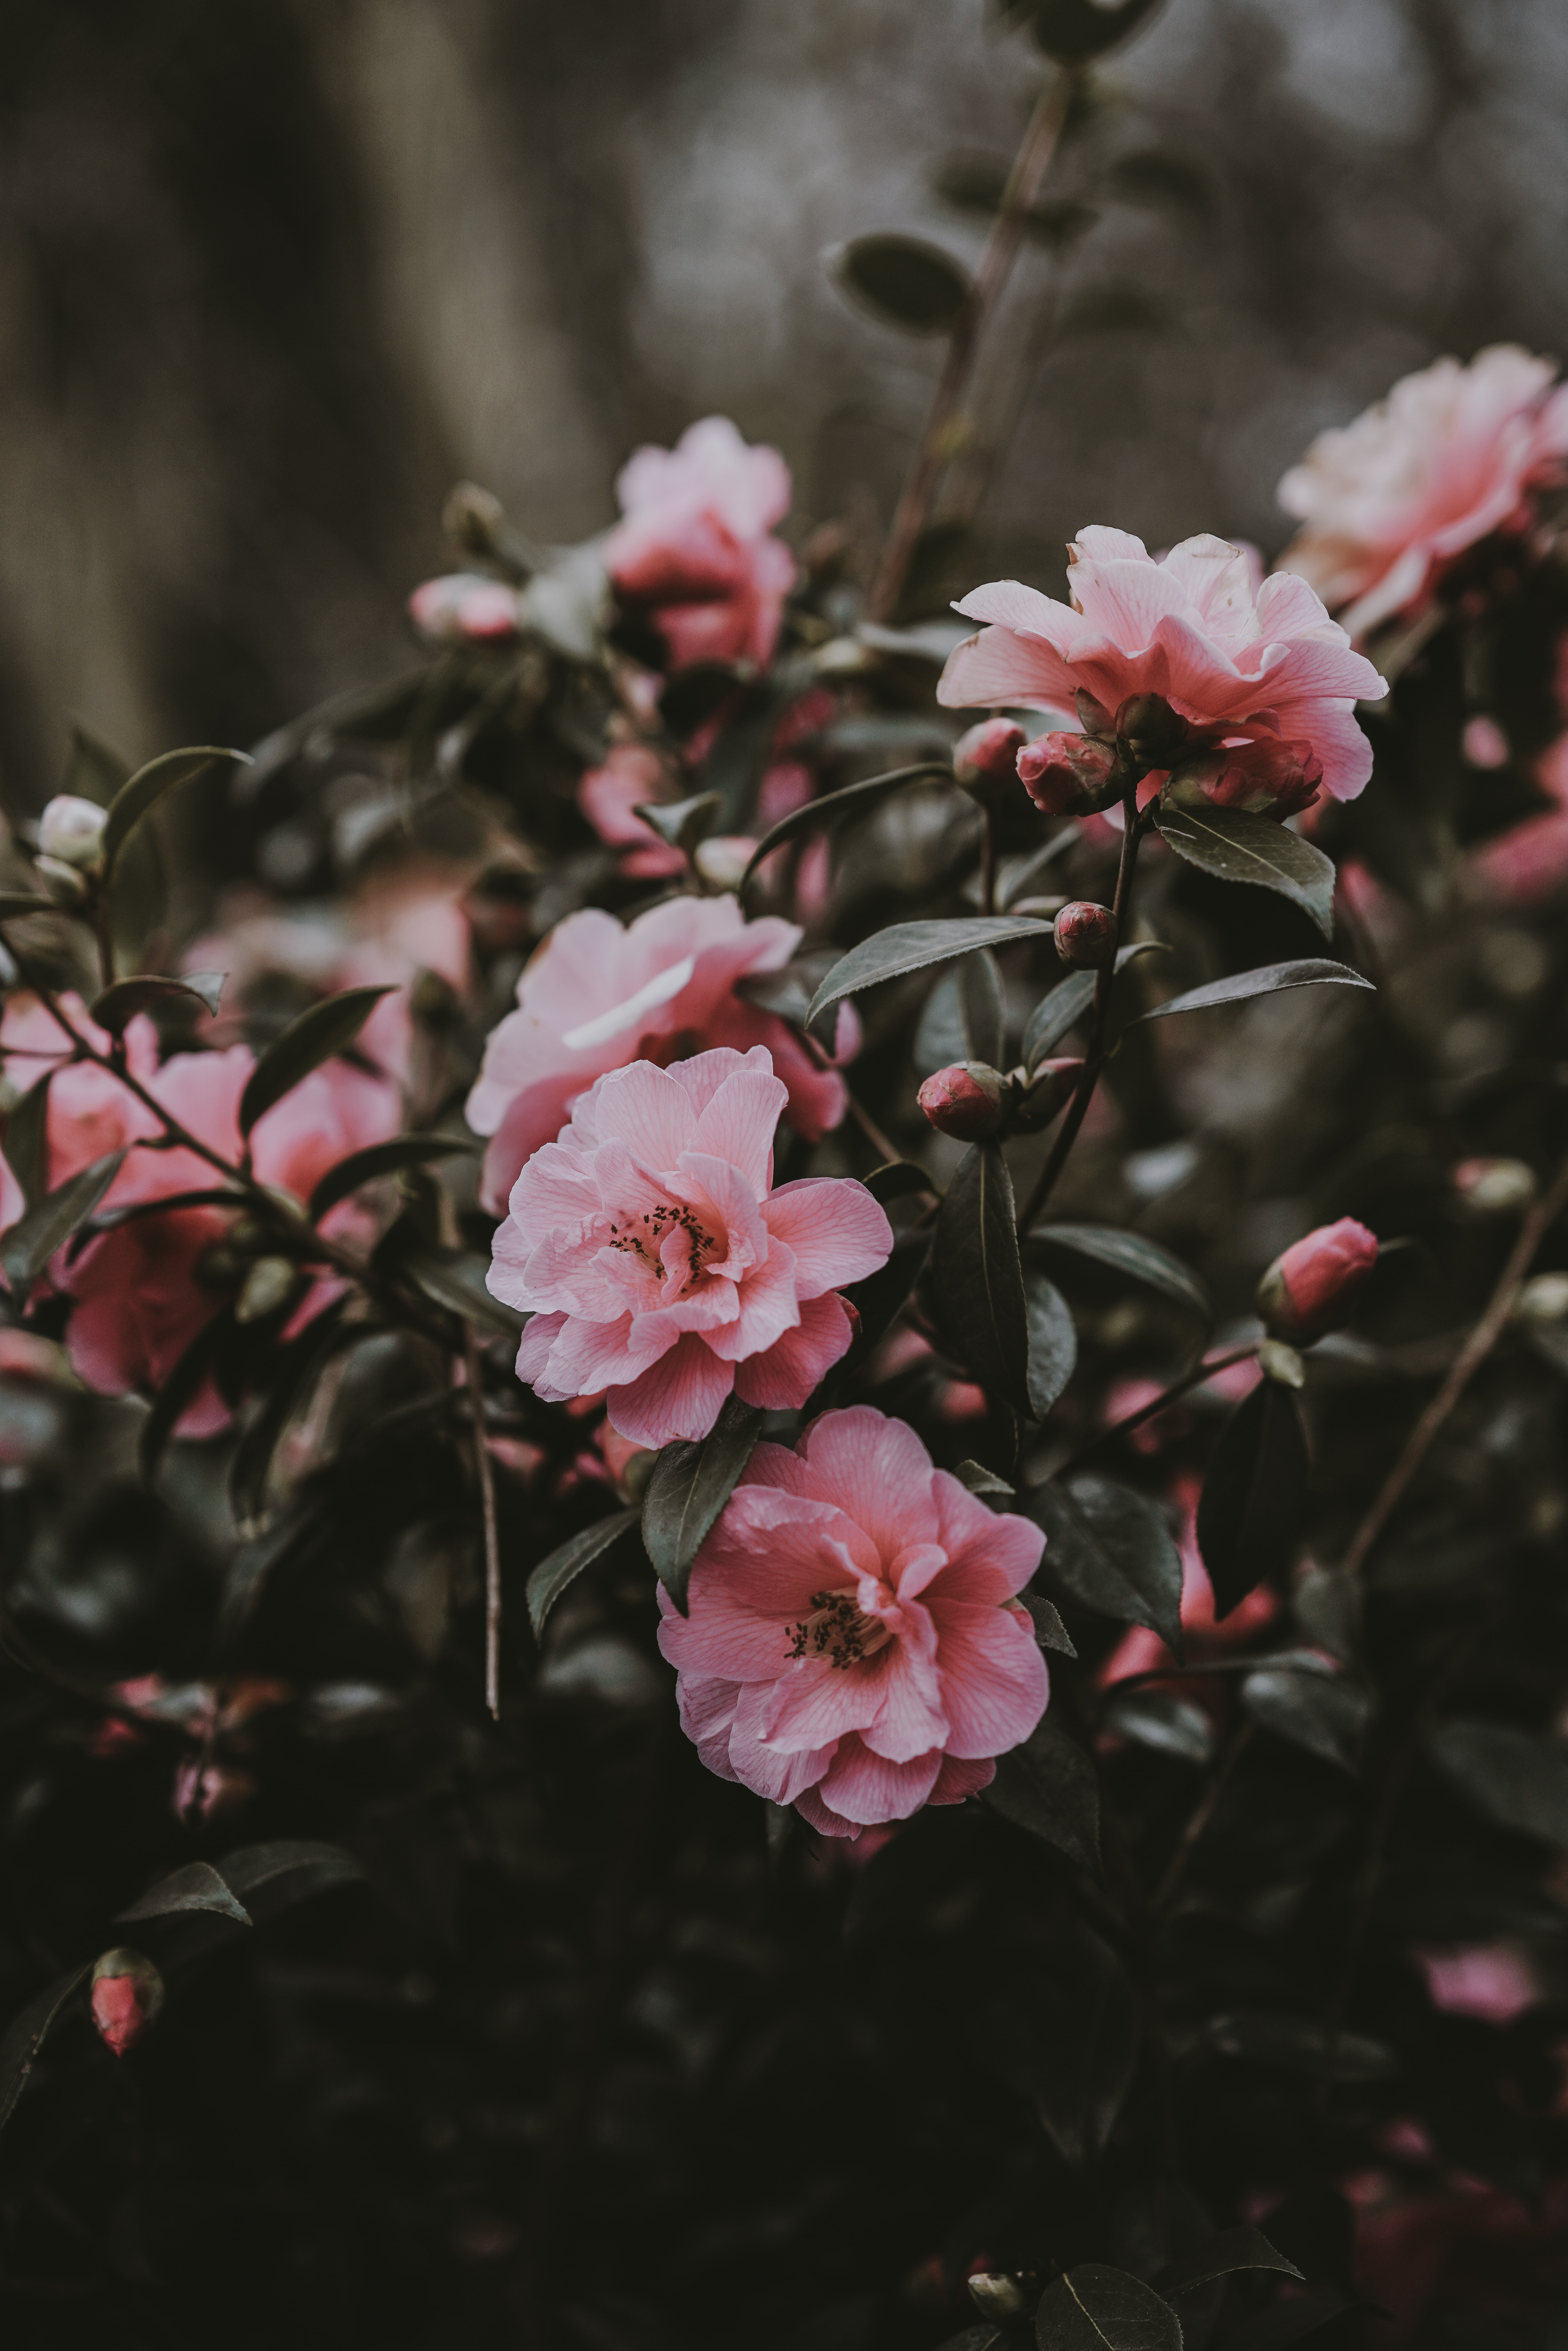 tilt shift photography of pink petaled flower